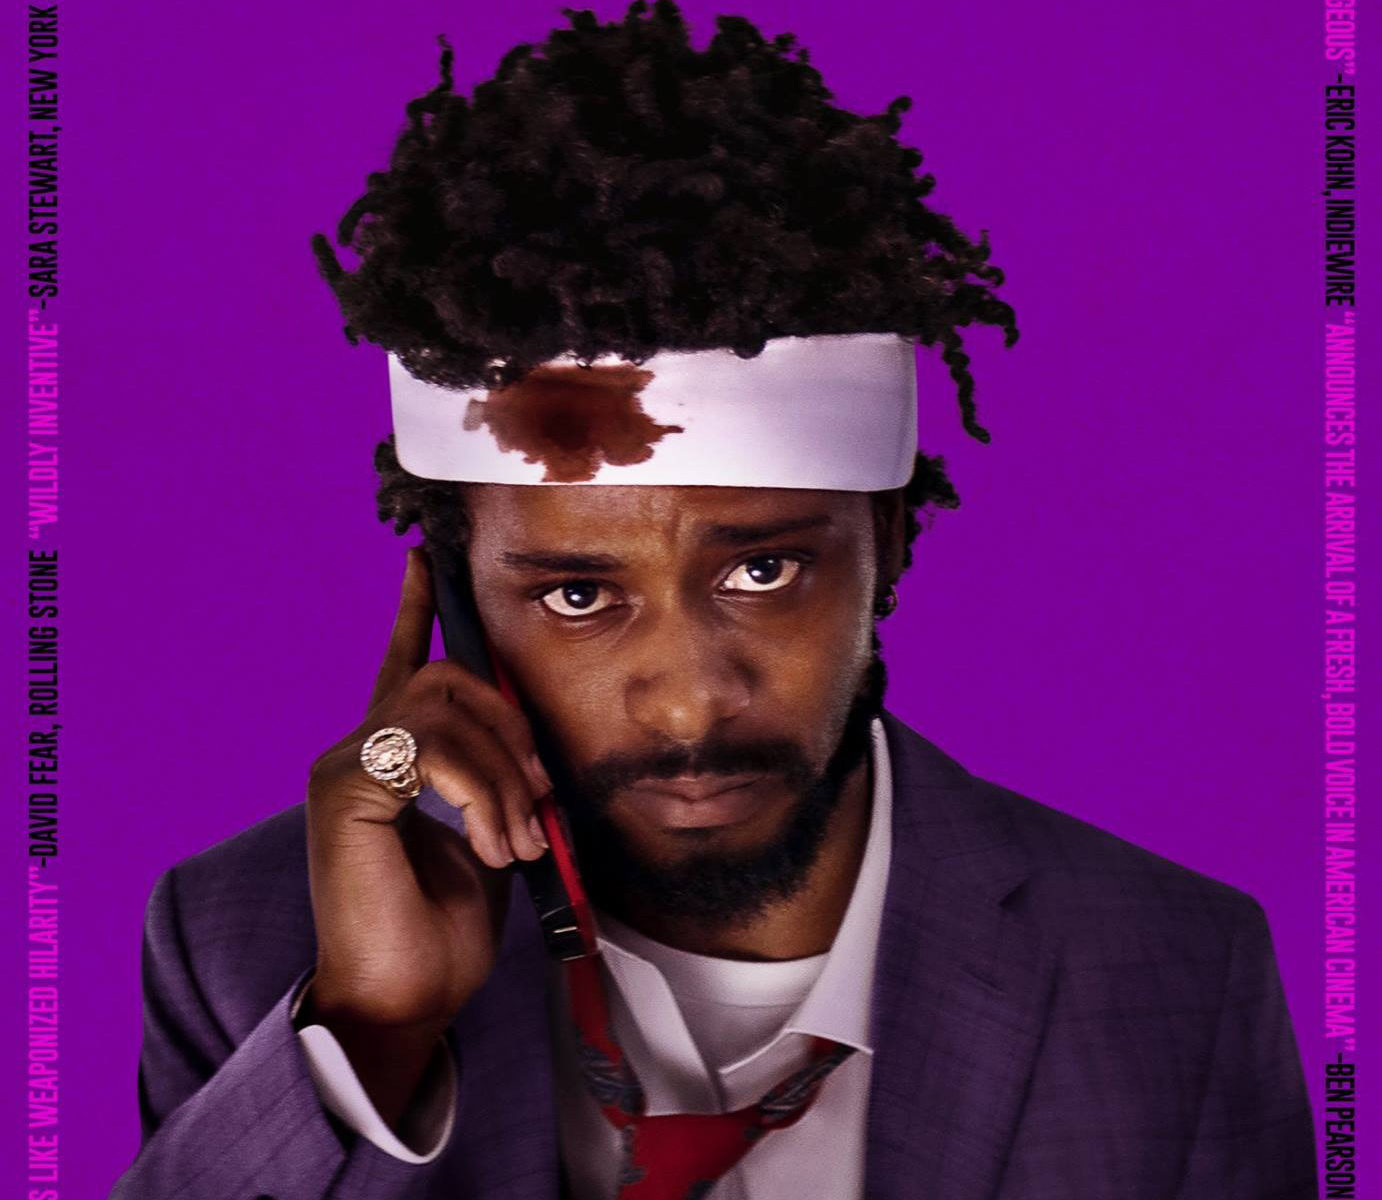 Boots Riley battles class injustice in his impressive and trippy debut film 'Sorry to Bother You'